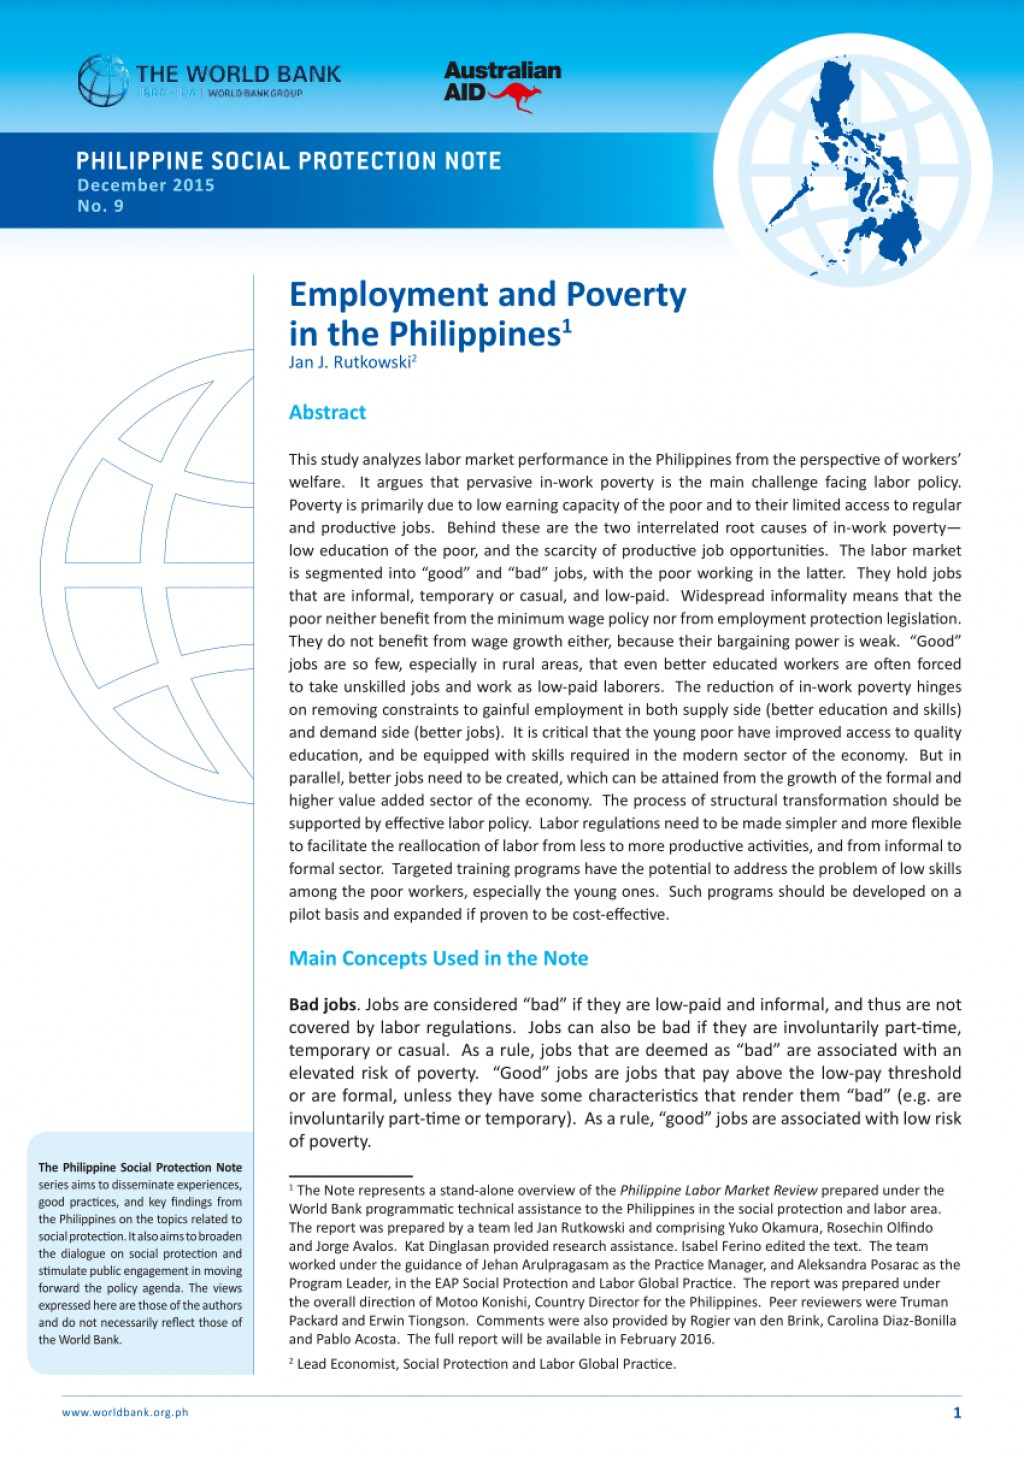 007 Poverty In The Philippines Research Paper Abstract Remarkable Large